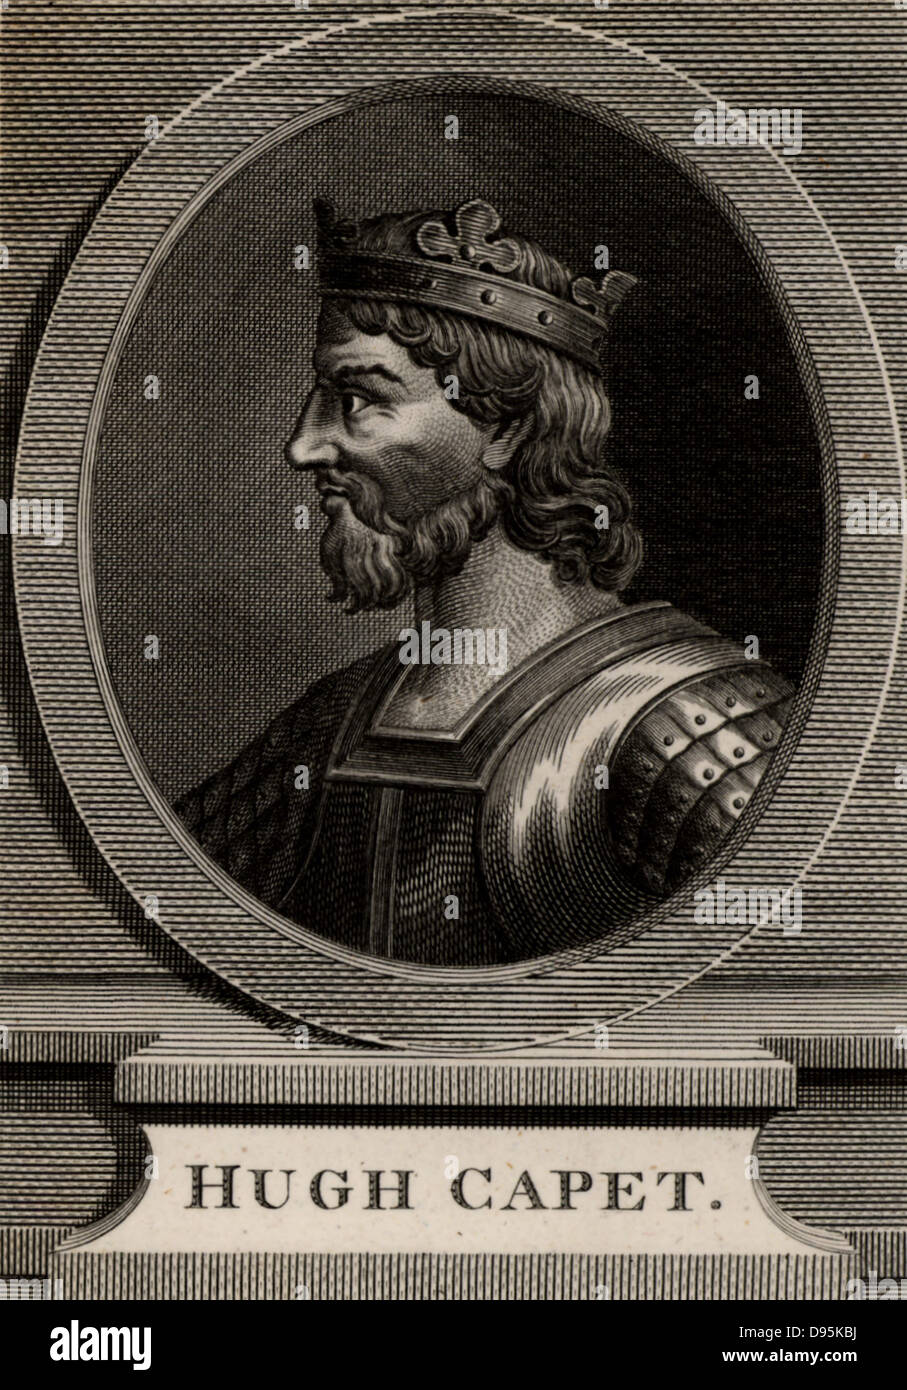 Hugh Capet (c938-996) elected king of France in 987 after the death of Louis V. Founder of Capetian dynasty which - Stock Image